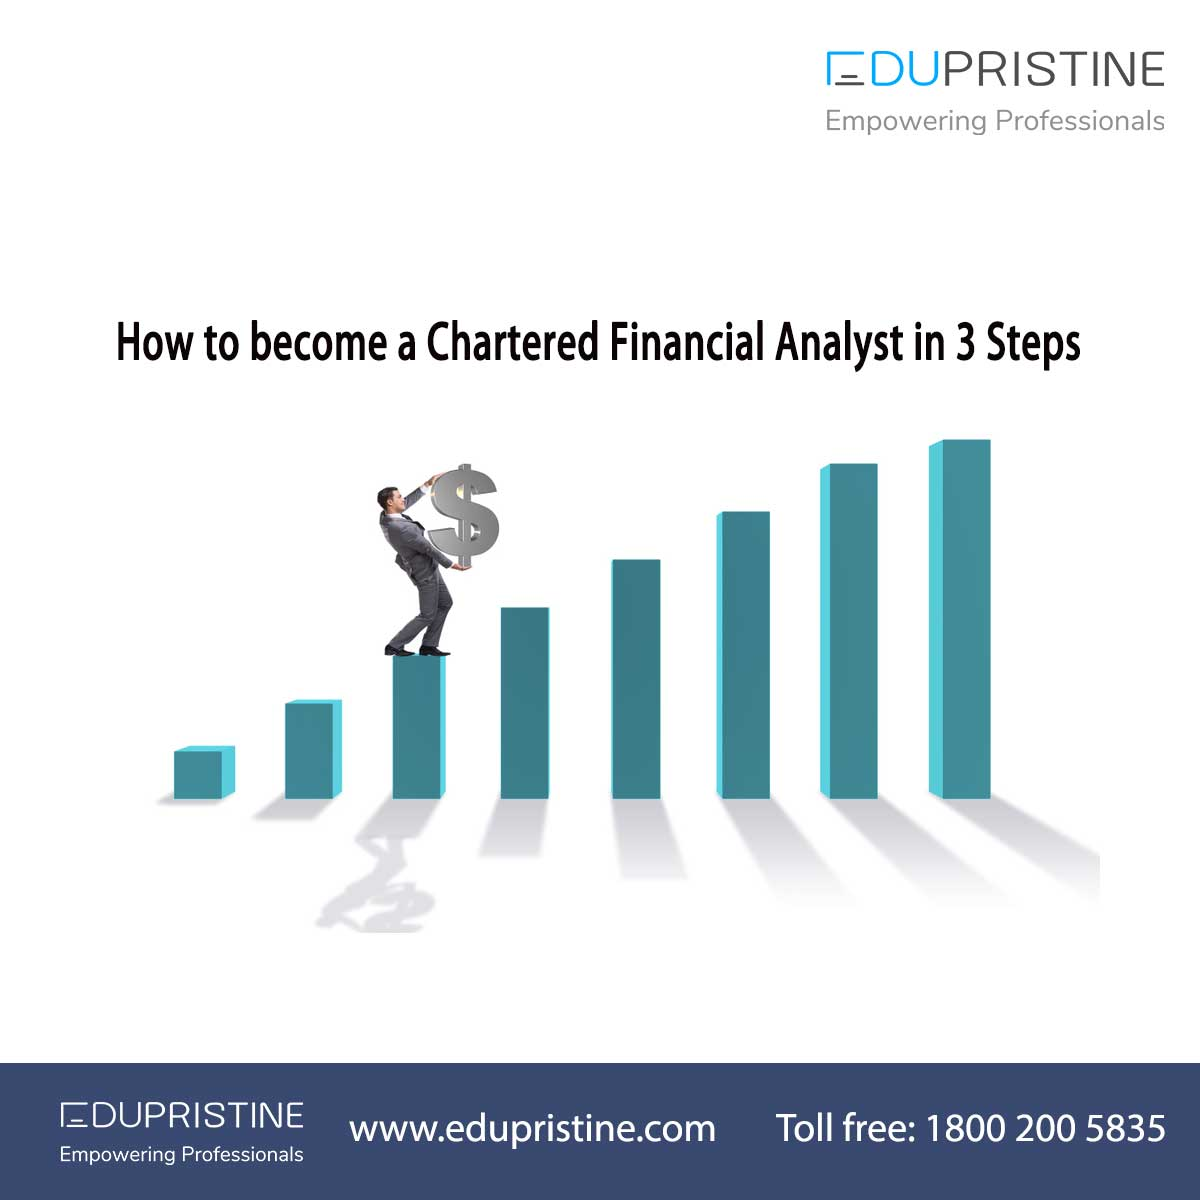 Step By Step Process To Become A Chartered Financial Analyst